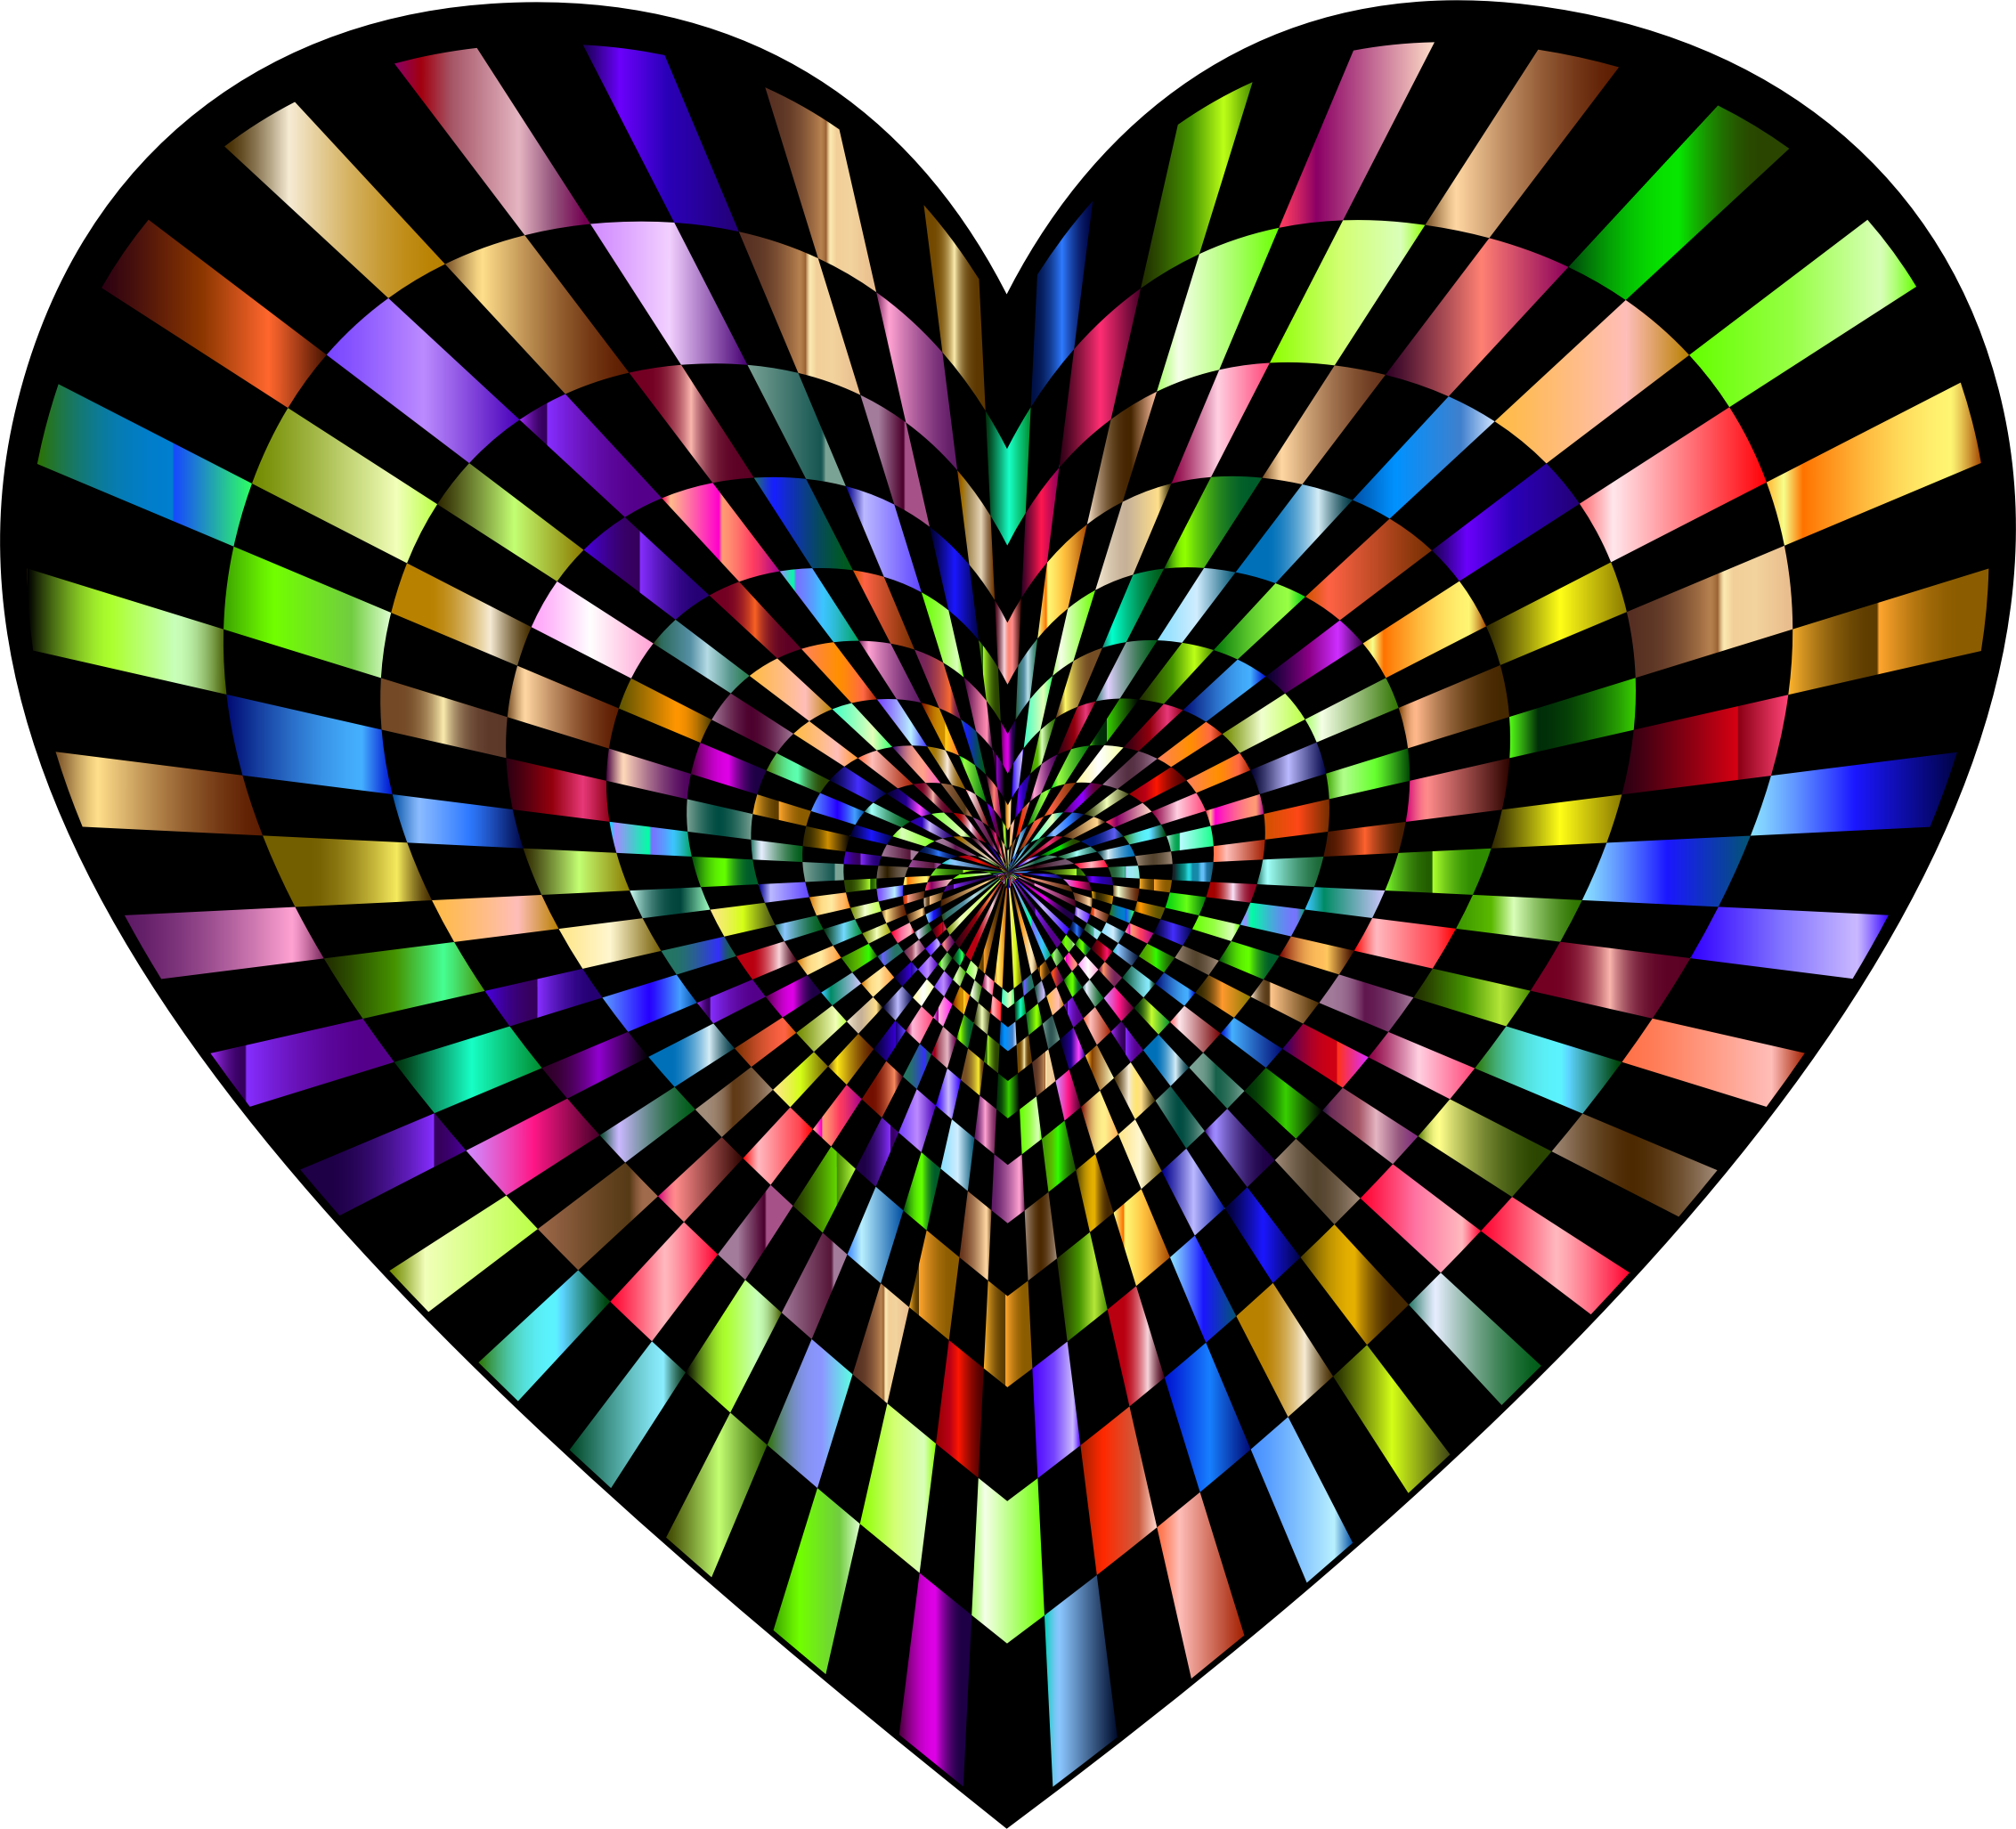 Optical Illusion Checkerboard Heart Prismatic 2 by GDJ